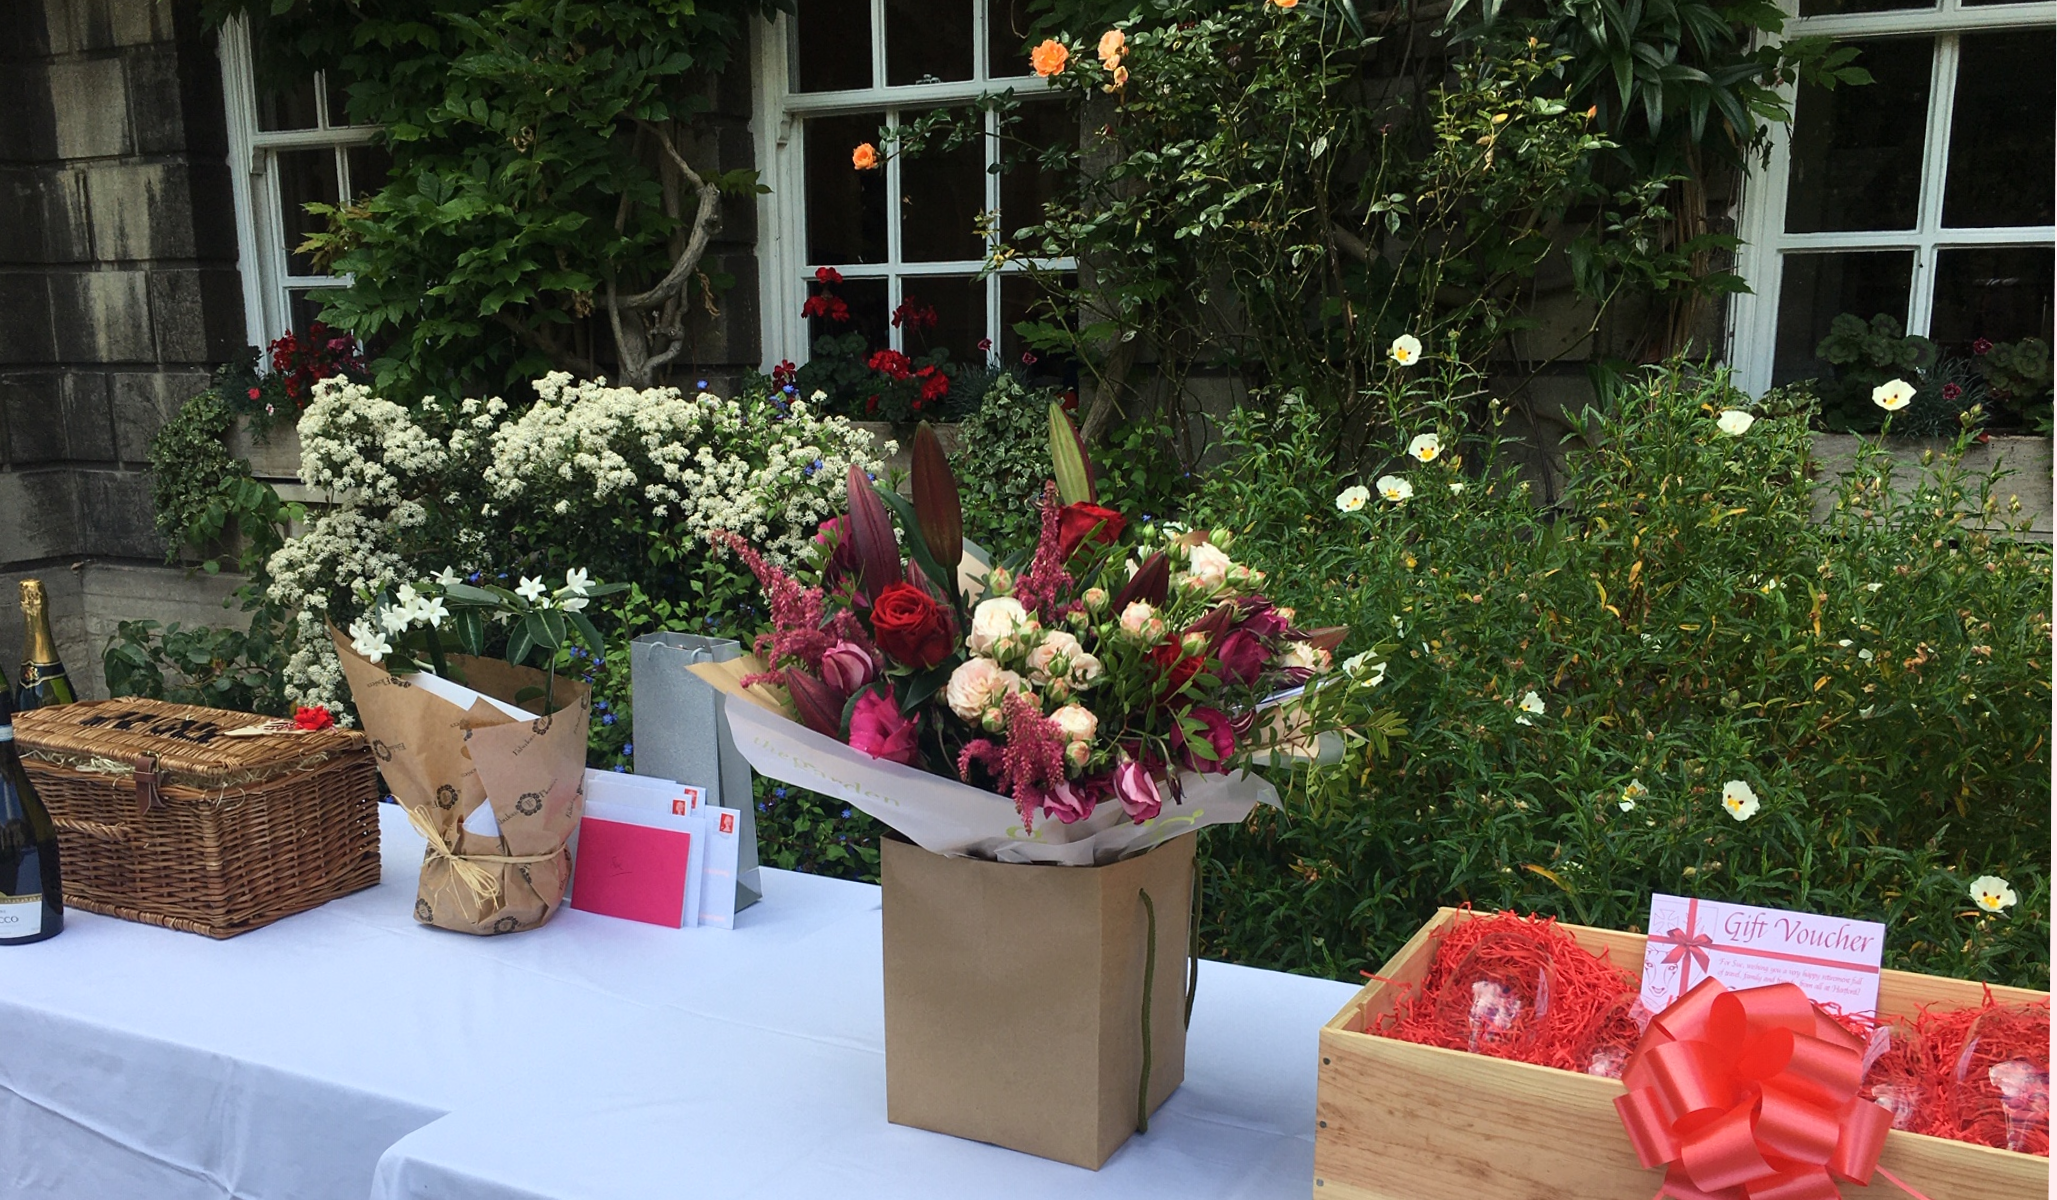 Table with gifts including a bunch of flowers and hampers